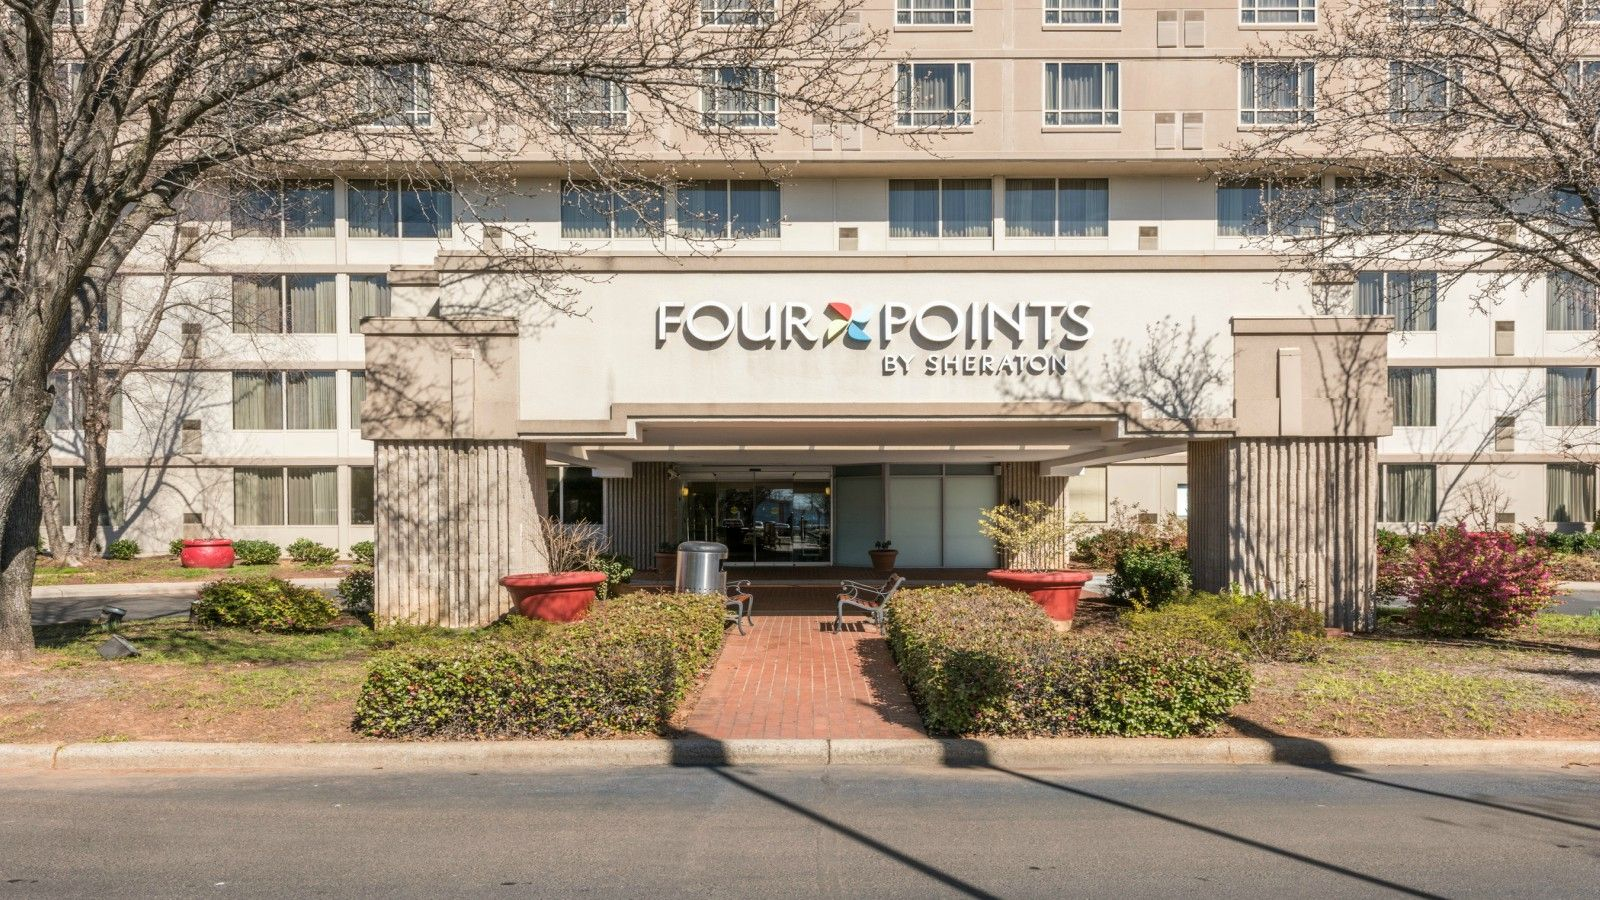 Four points by sheraton charlotte in charlotte nc 28217 for North american motor inn banquet hall